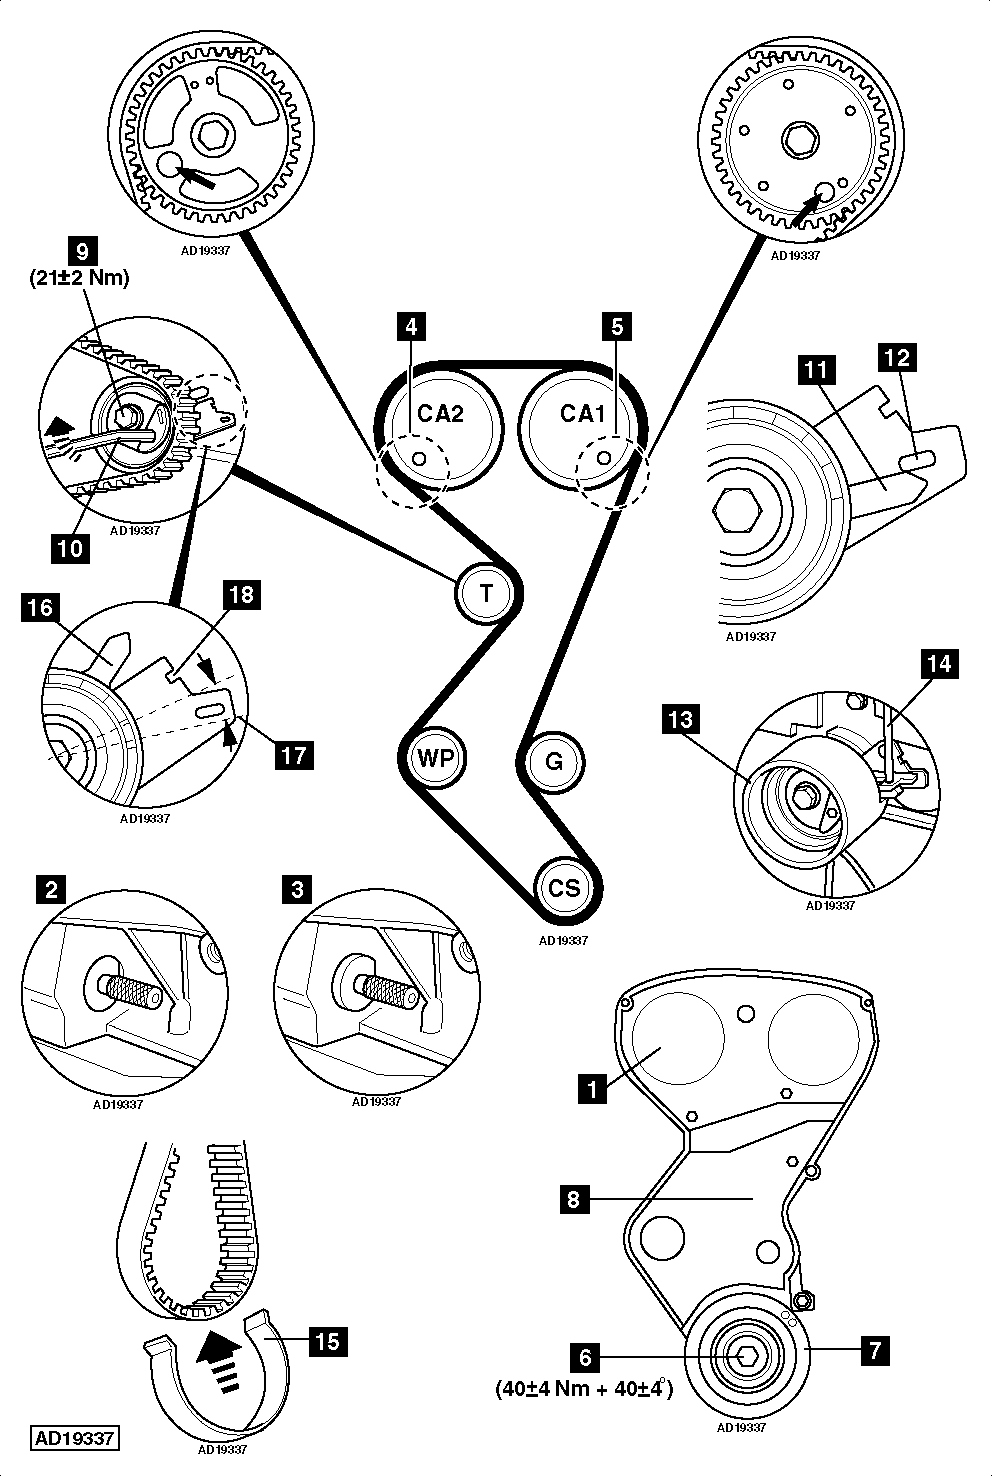 hight resolution of 2006 chevrolet trailblazer serpentine belt diagram 2006 1999 buick regal serpentine belt diagram 1999 buick regal